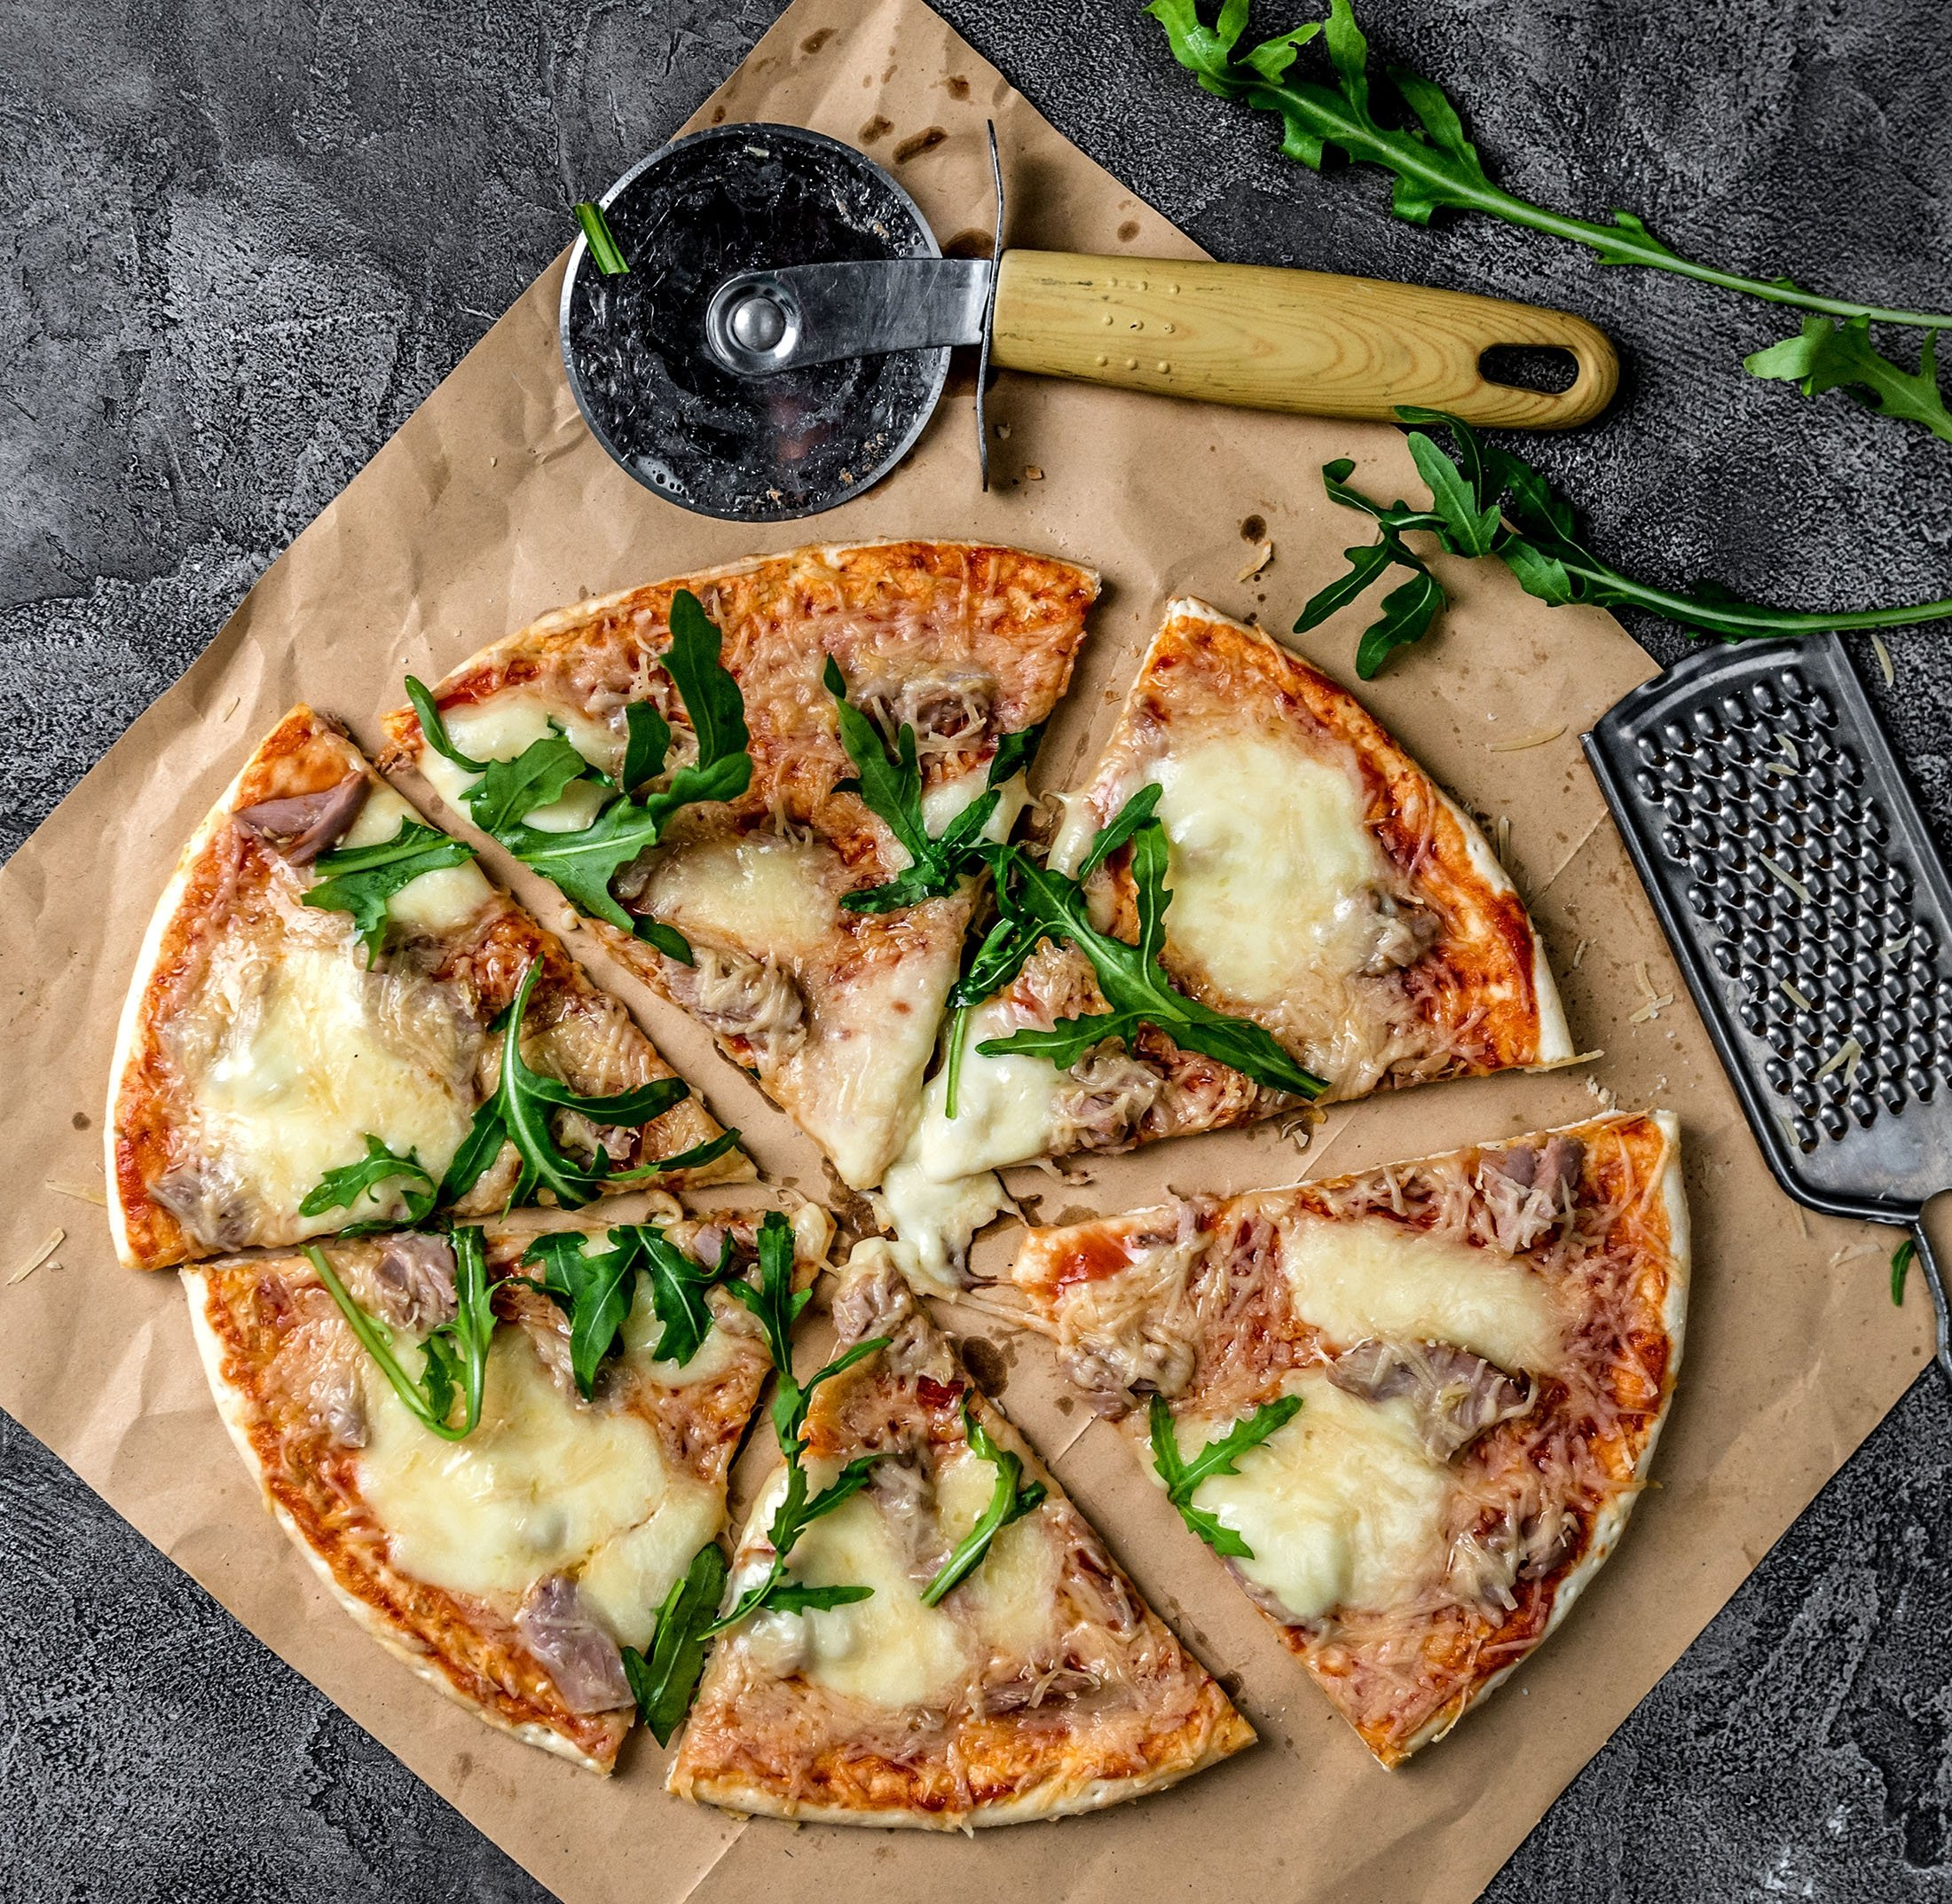 Tuna pairs beautifully with mozzarella cheese, parmesan and rocket on a pizza. (Shutterstock Photo)